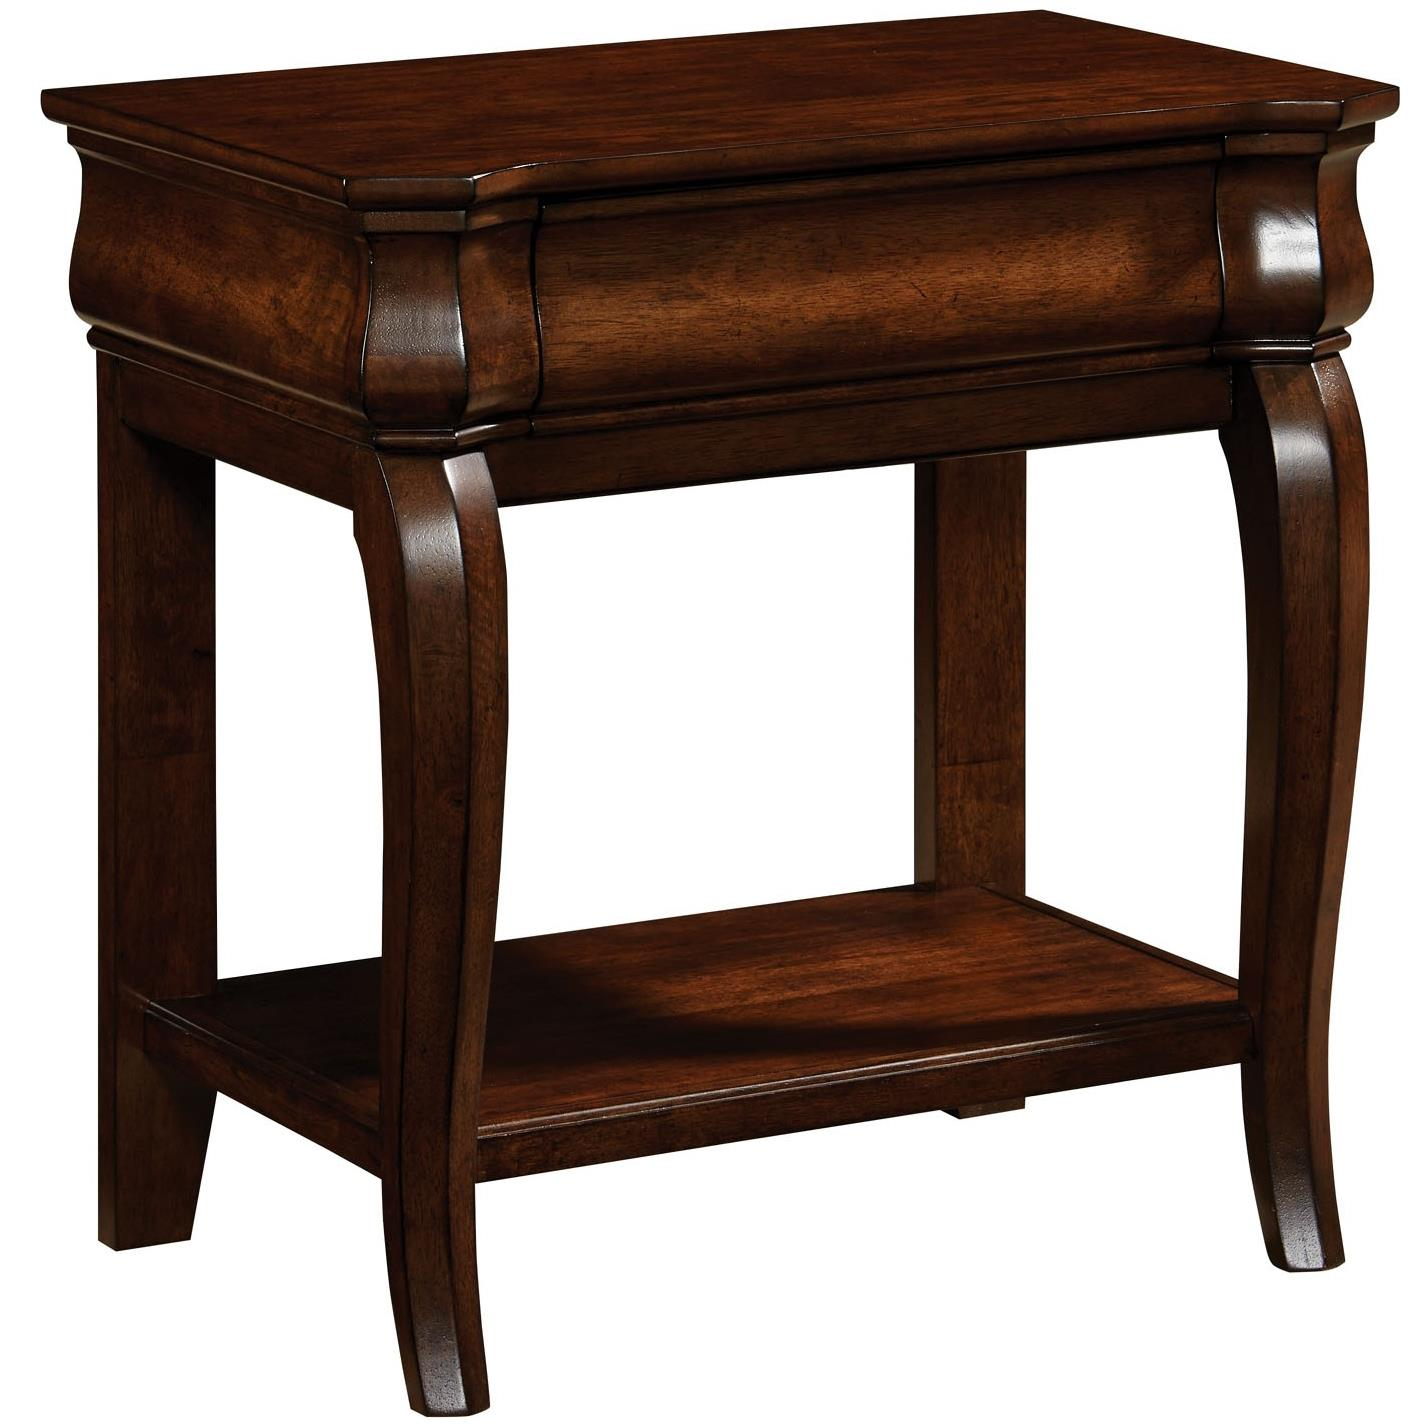 Broyhill Furniture Aryell Night Table - Item Number: 4906-291